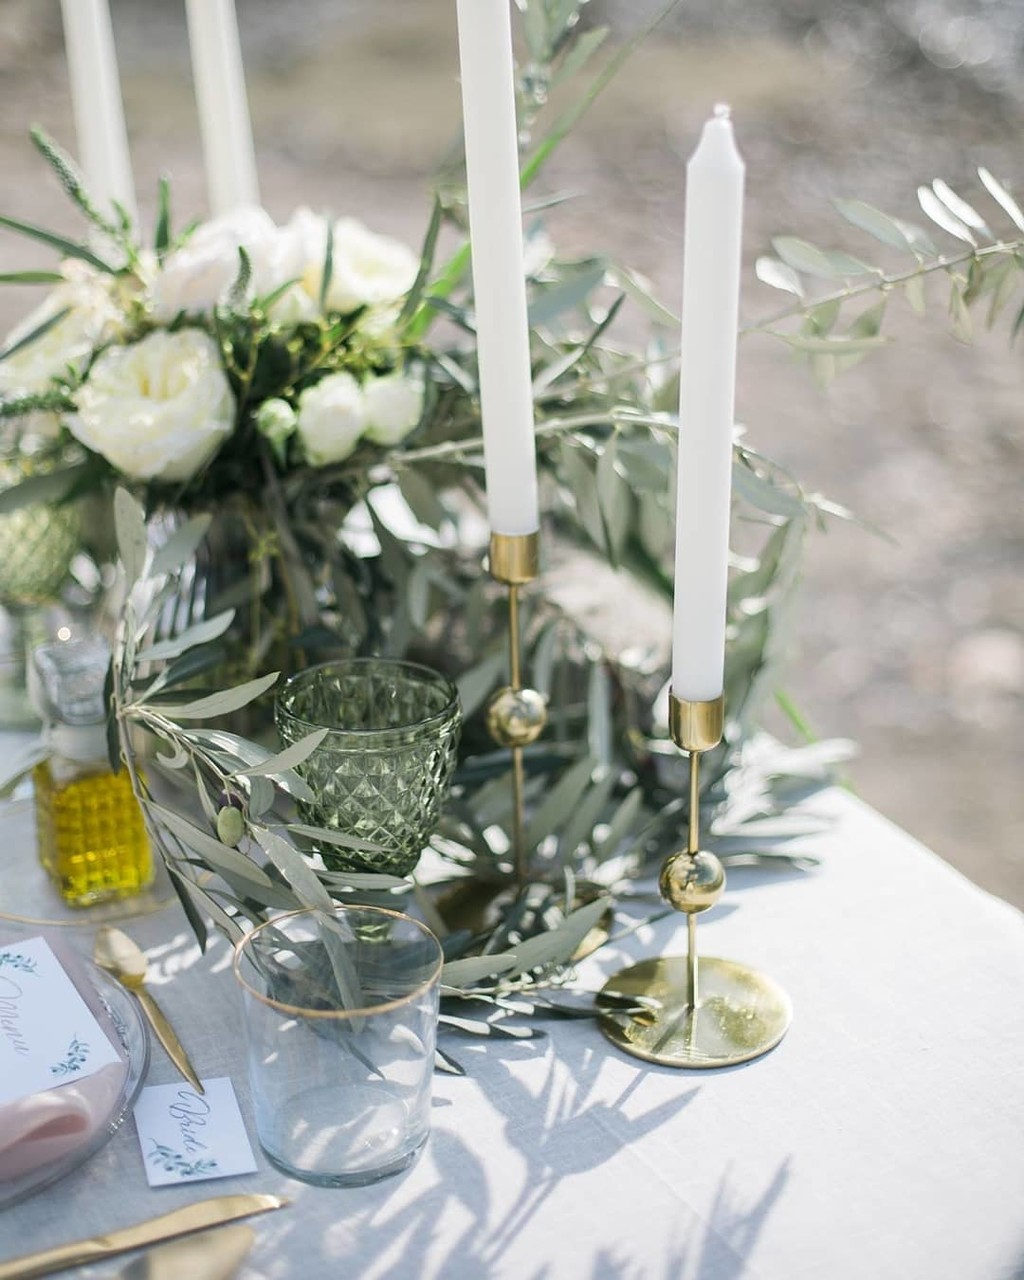 ▪M for Magic.This elegant and chic set up meets organic style with details of olive and eucalyptus. A dream come true by the sea